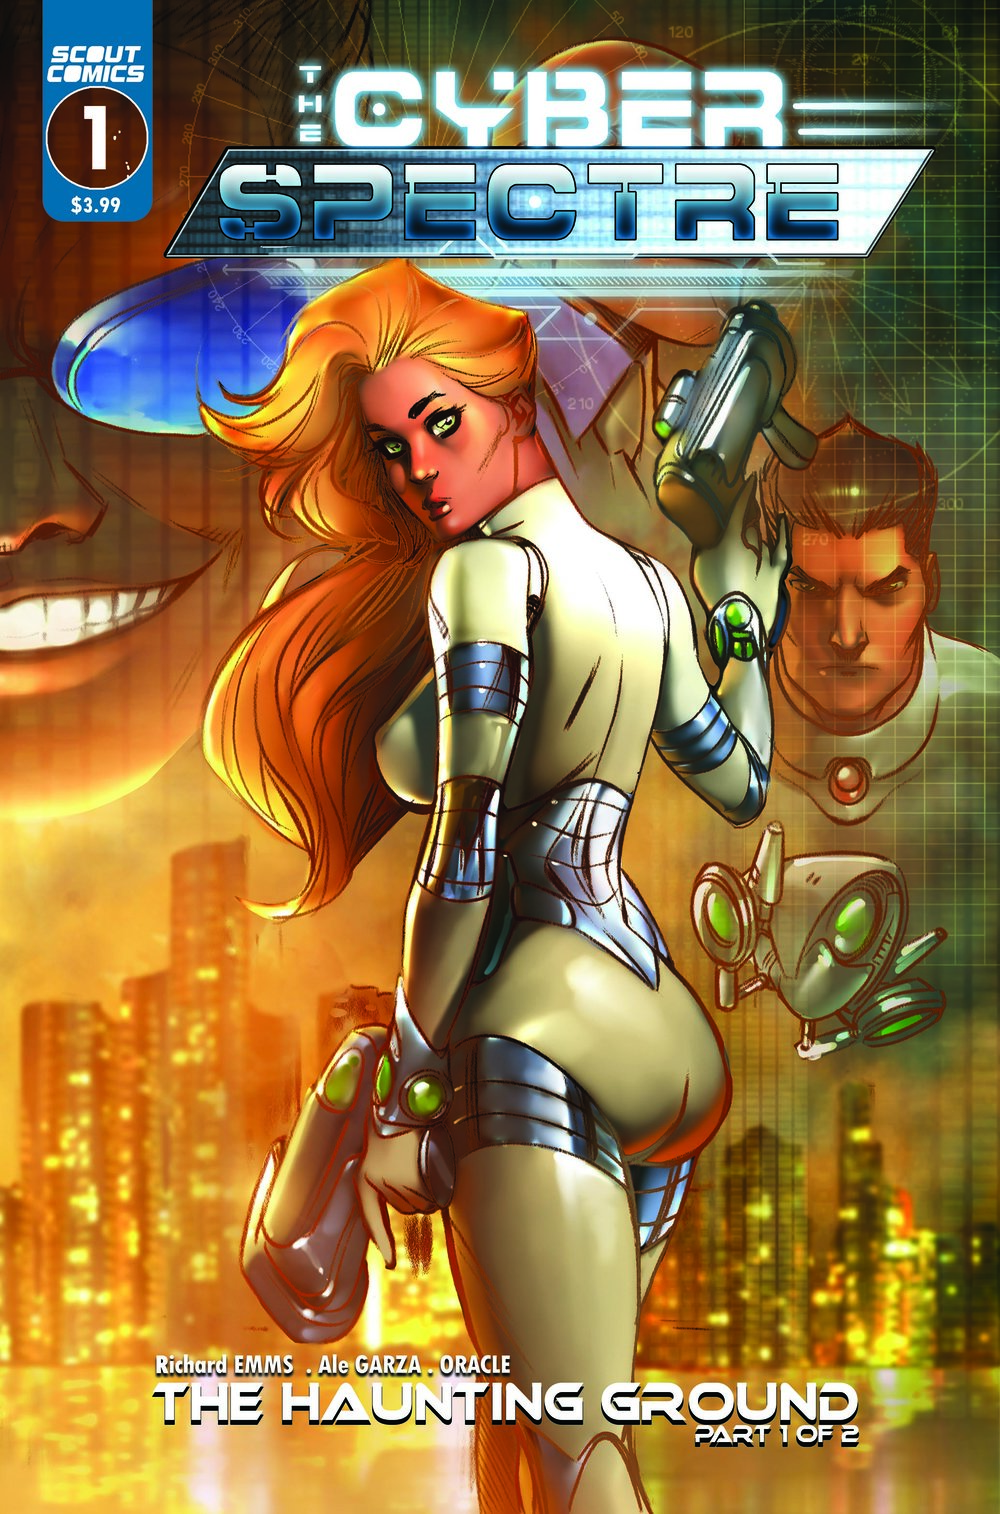 THE CYBER SPECTRE #1 Cover A ALE GARZA COLOR regular cover.jpg